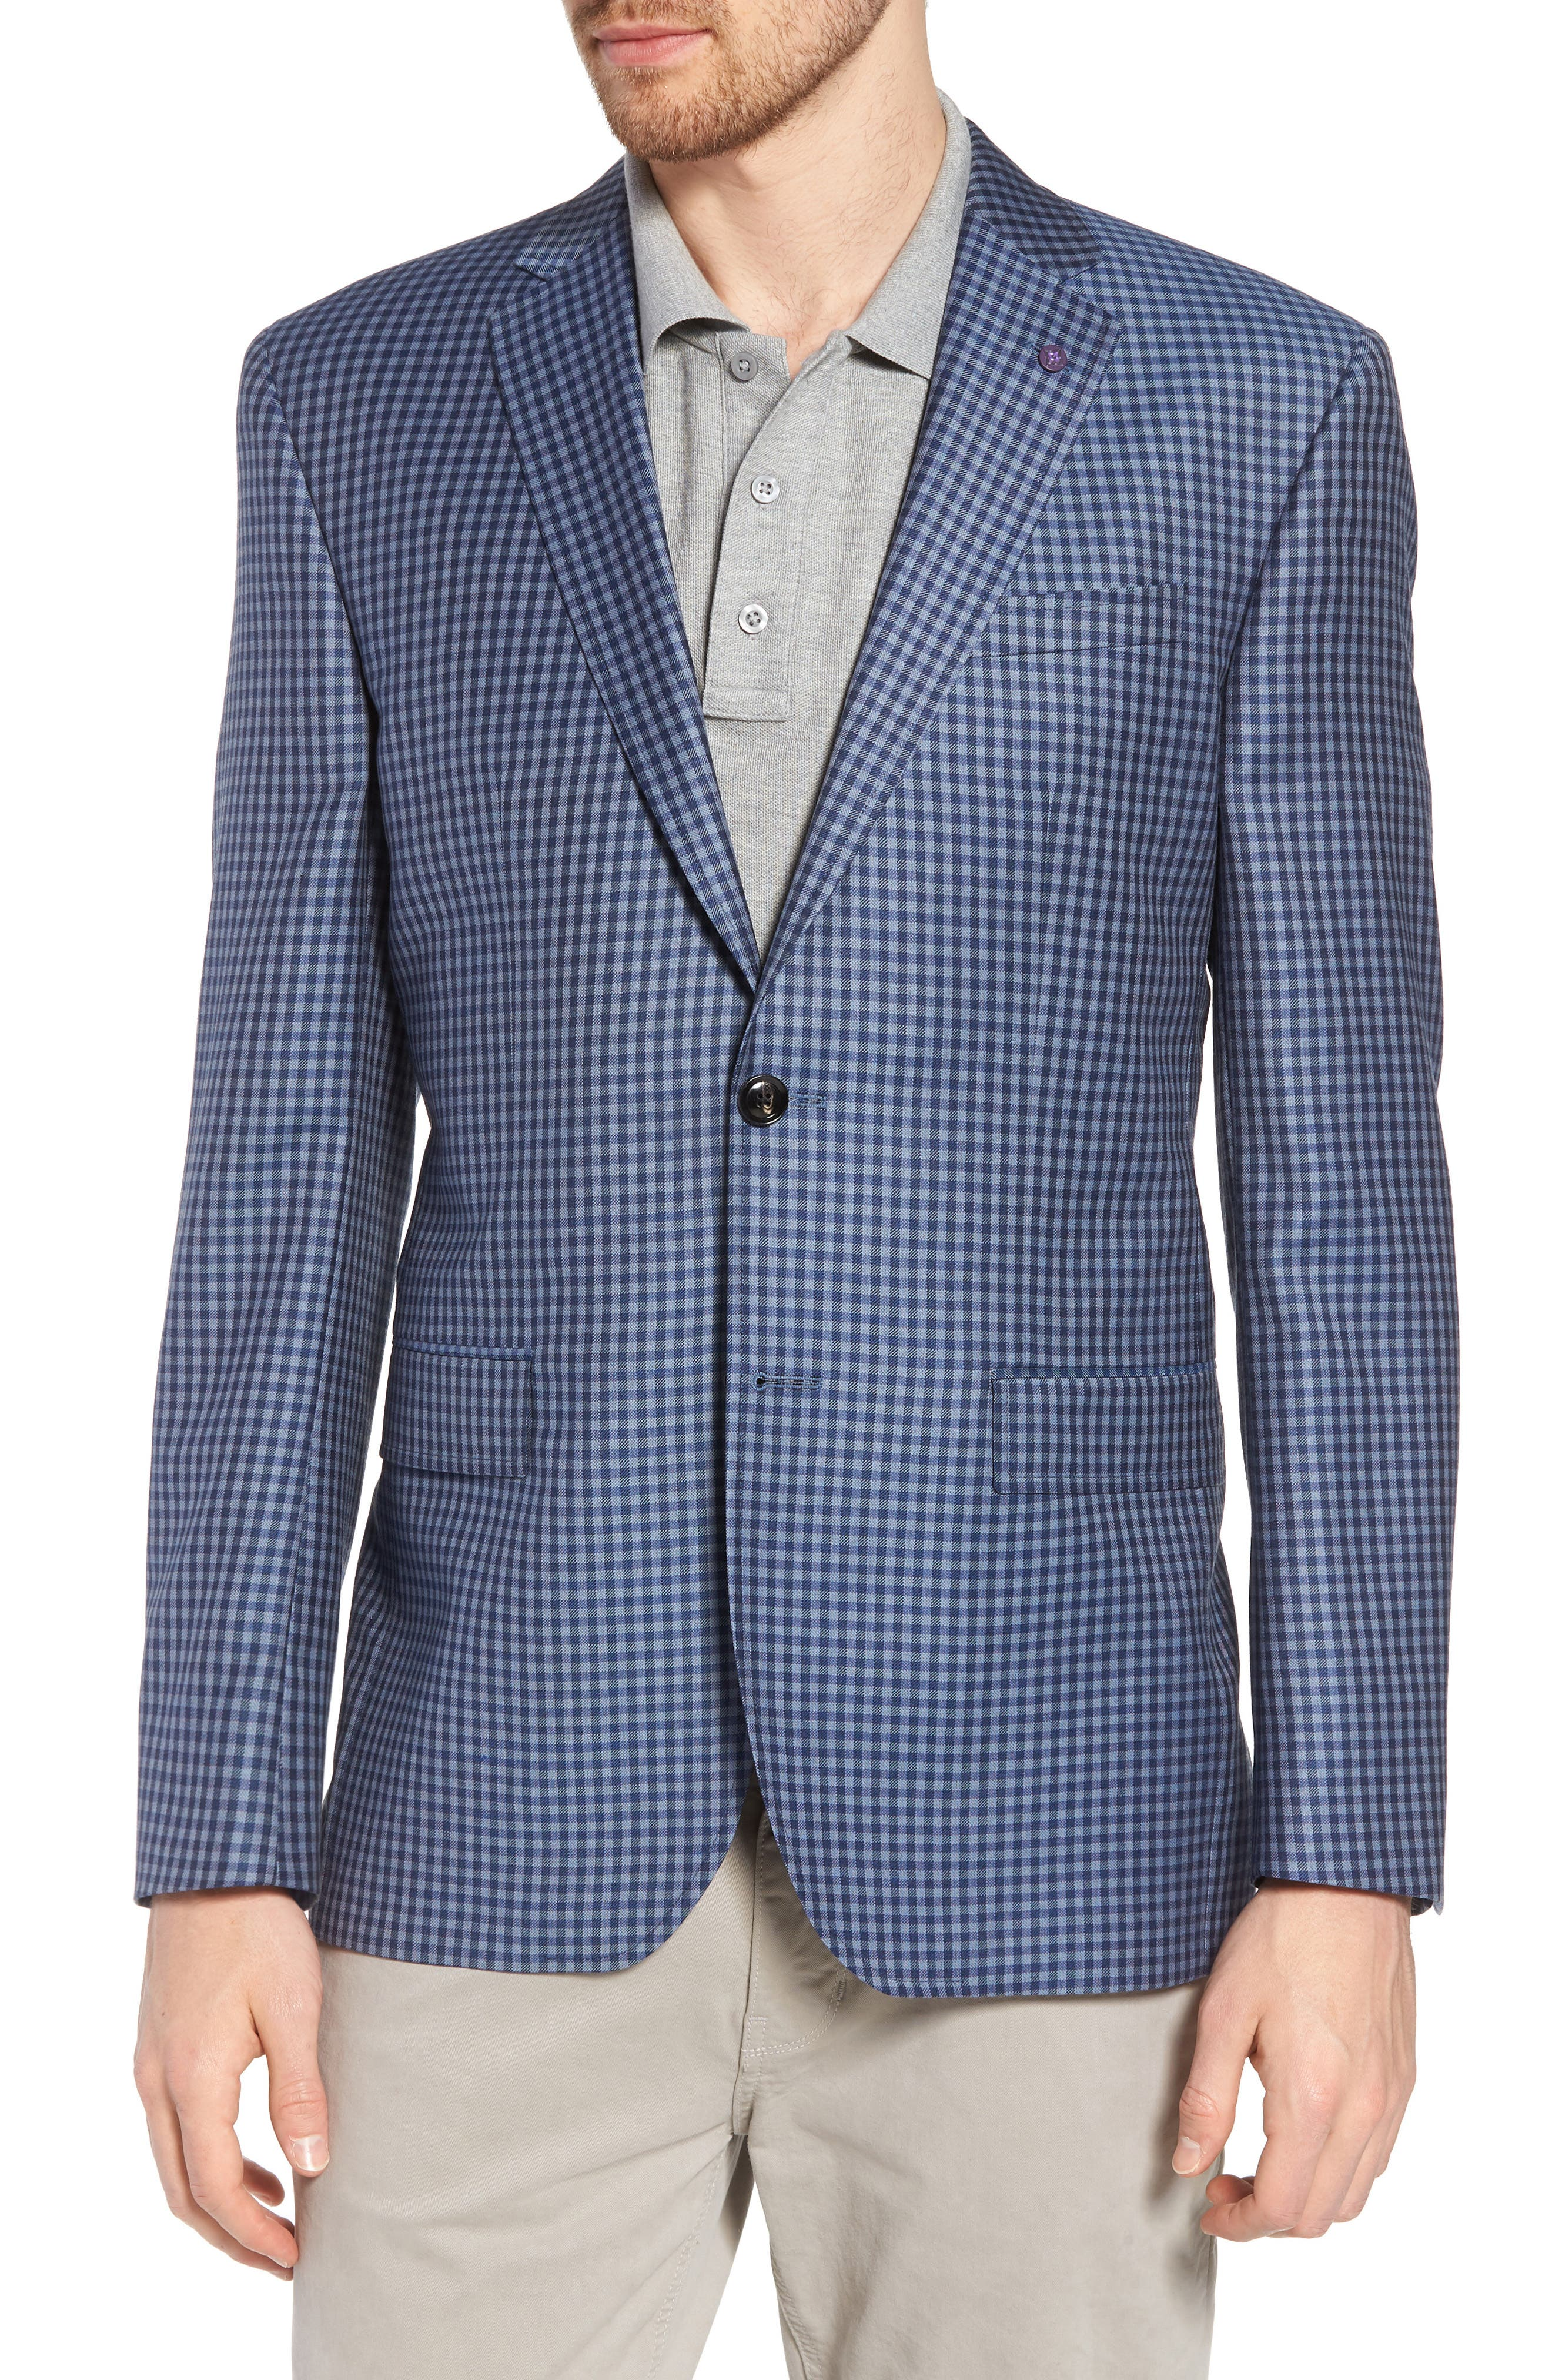 Jay Trim Fit Check Wool Sport Coat,                             Main thumbnail 1, color,                             Blue